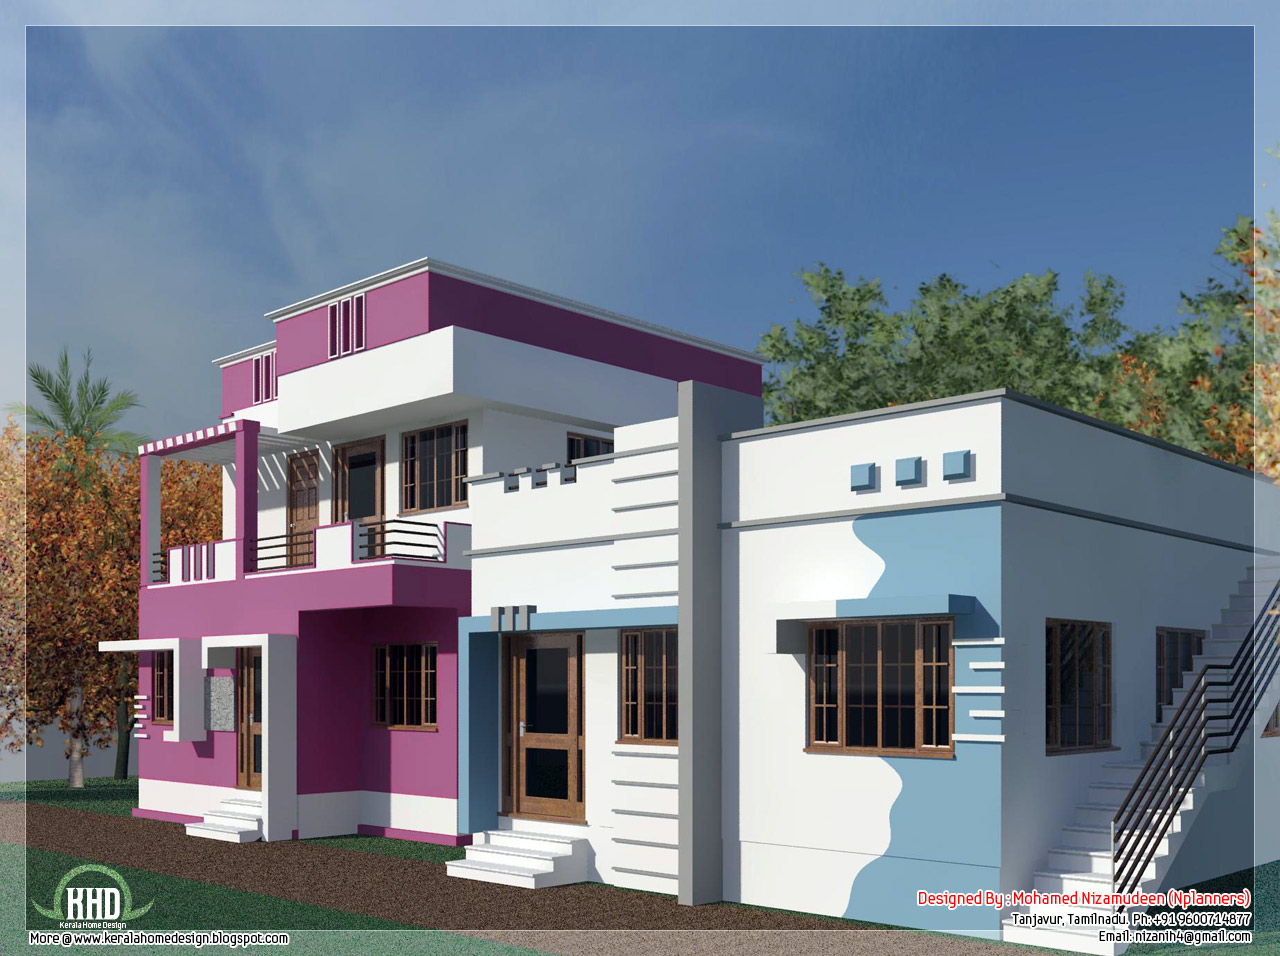 Tamilnadu model home design in 3000 kerala home for Houses models